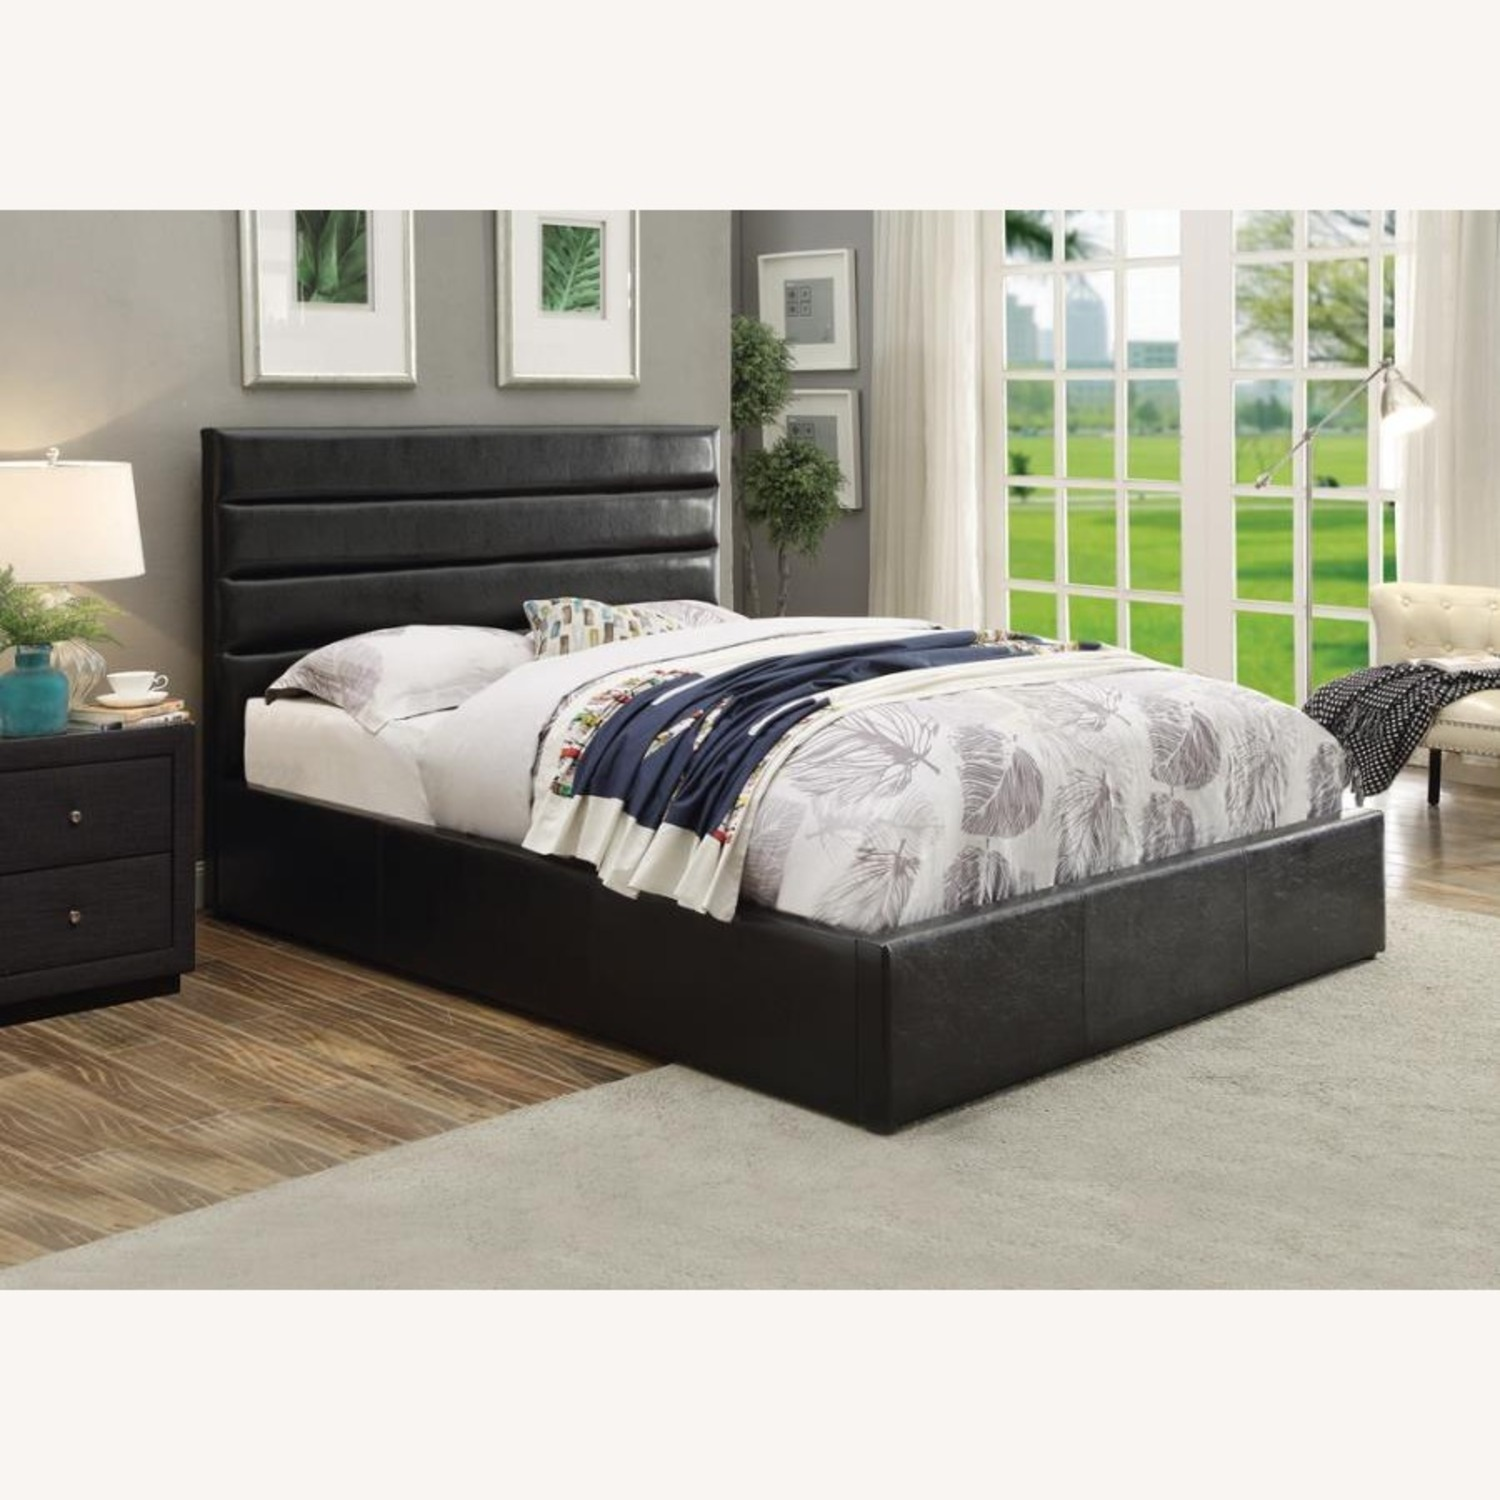 King Bed W/ Lift-Up Storage In Black Leatherette - image-1